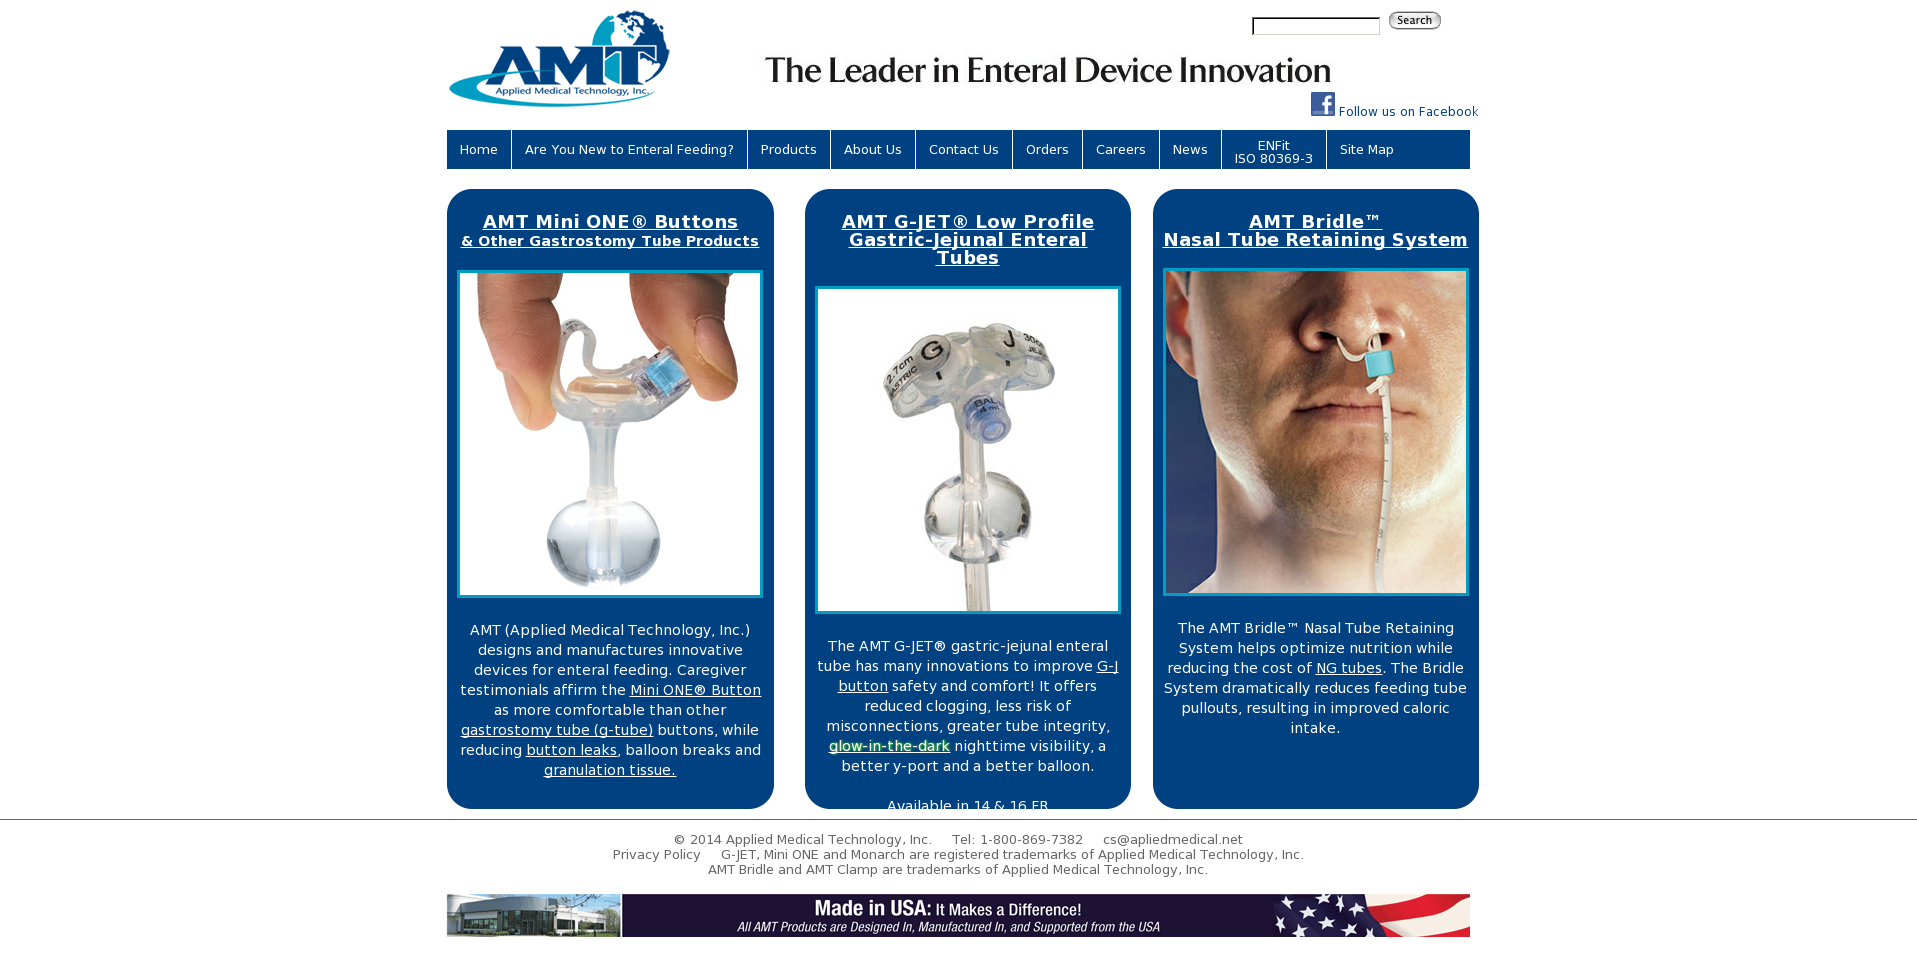 Applied Medical Technology, Inc Competitors, Revenue and